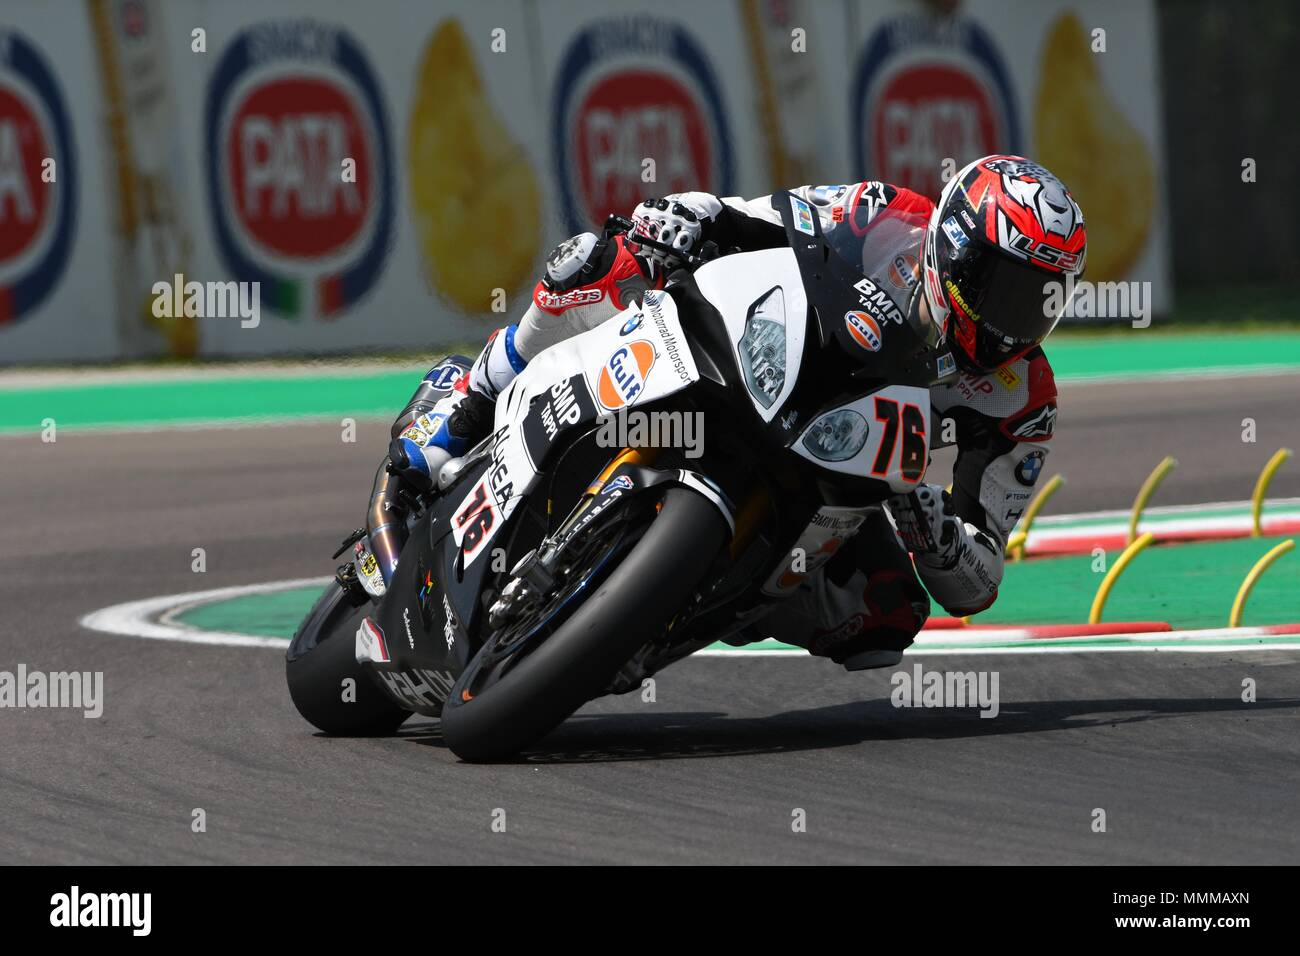 San Marino Italy - May 11, 2018: Loris Baz FRA BMW S 1000 RR GULF ALTHEA BMW Racing Team, in action during the Superbike Qualifying session on May 11, Stock Photo